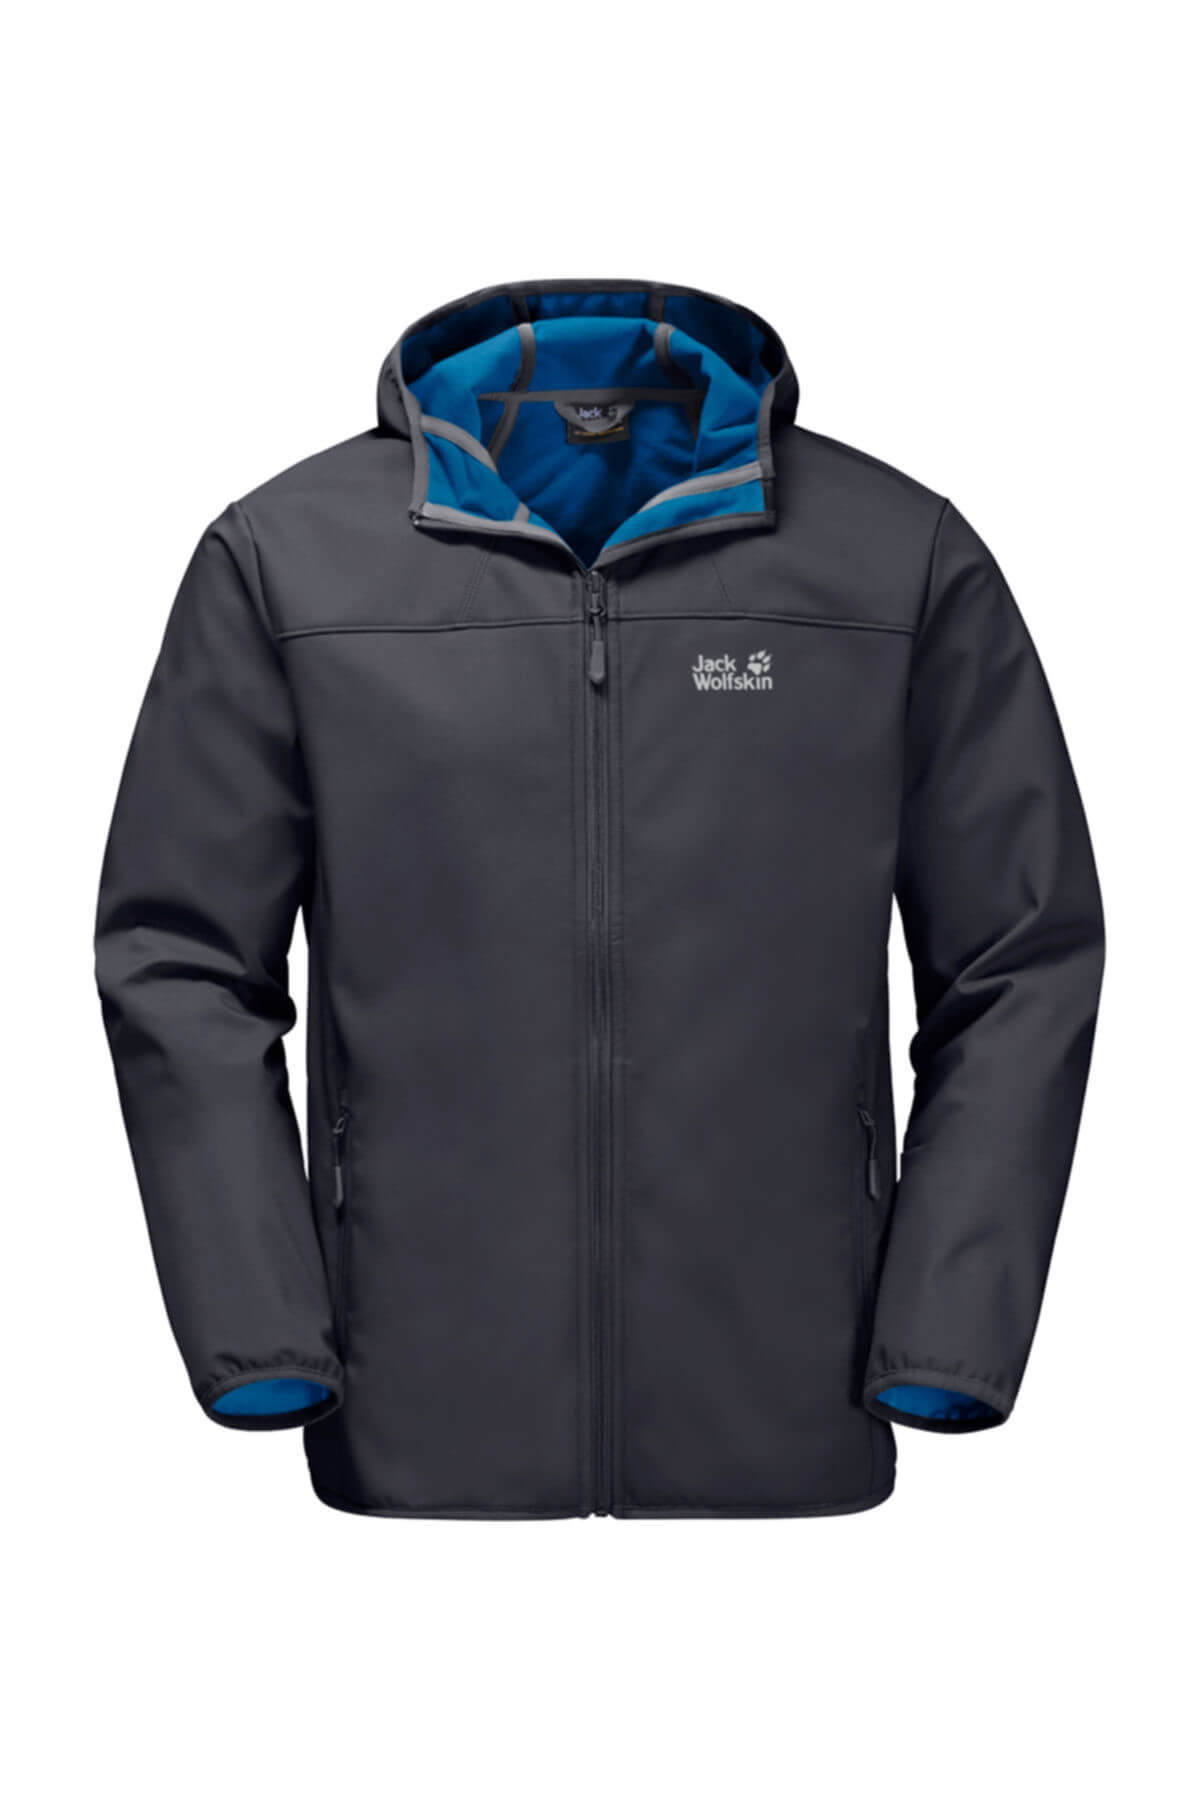 Jack Wolfskin Northern Point Erkek Softshell Mont 1304001 1